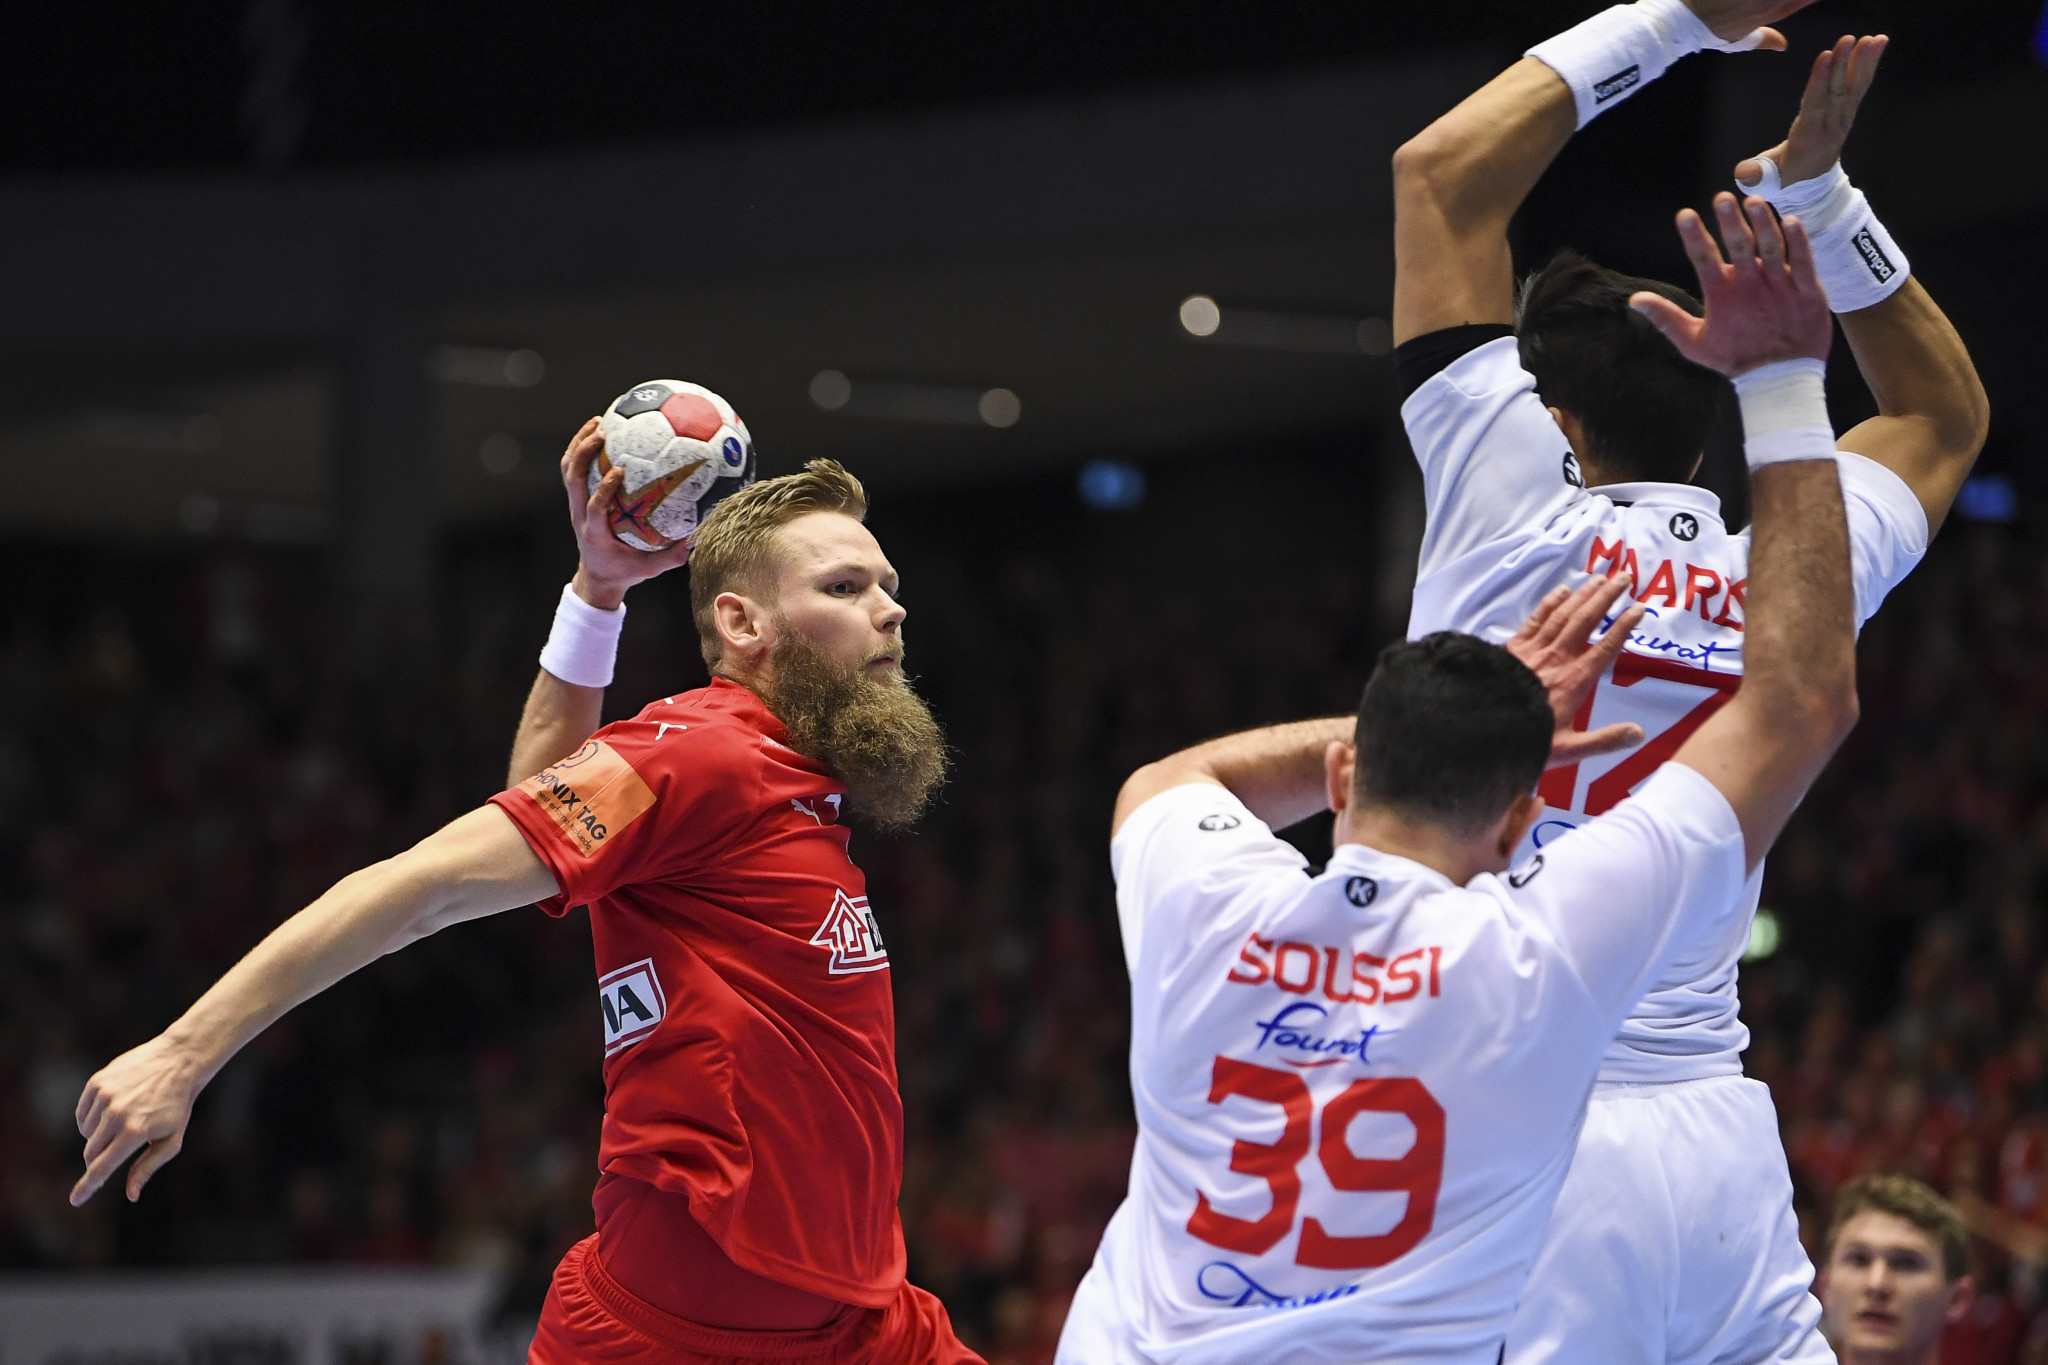 Denmark defeated Tunisia 36-22 to get their second victory of the IHF Men's Handball Championships ©Getty Images